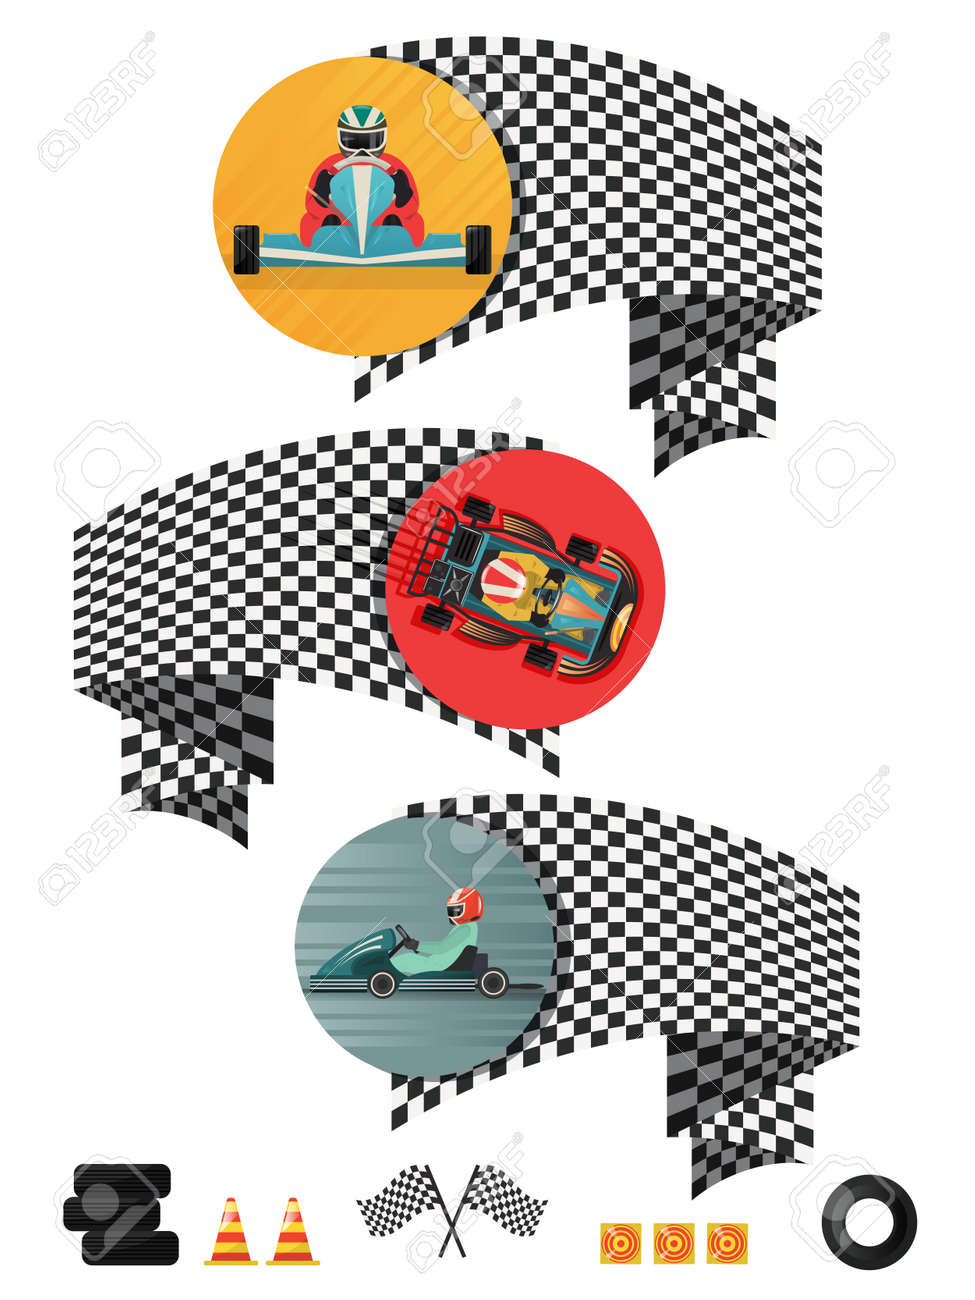 Kart racing concept set with checkered flag isolated vector illustration. - 71619687